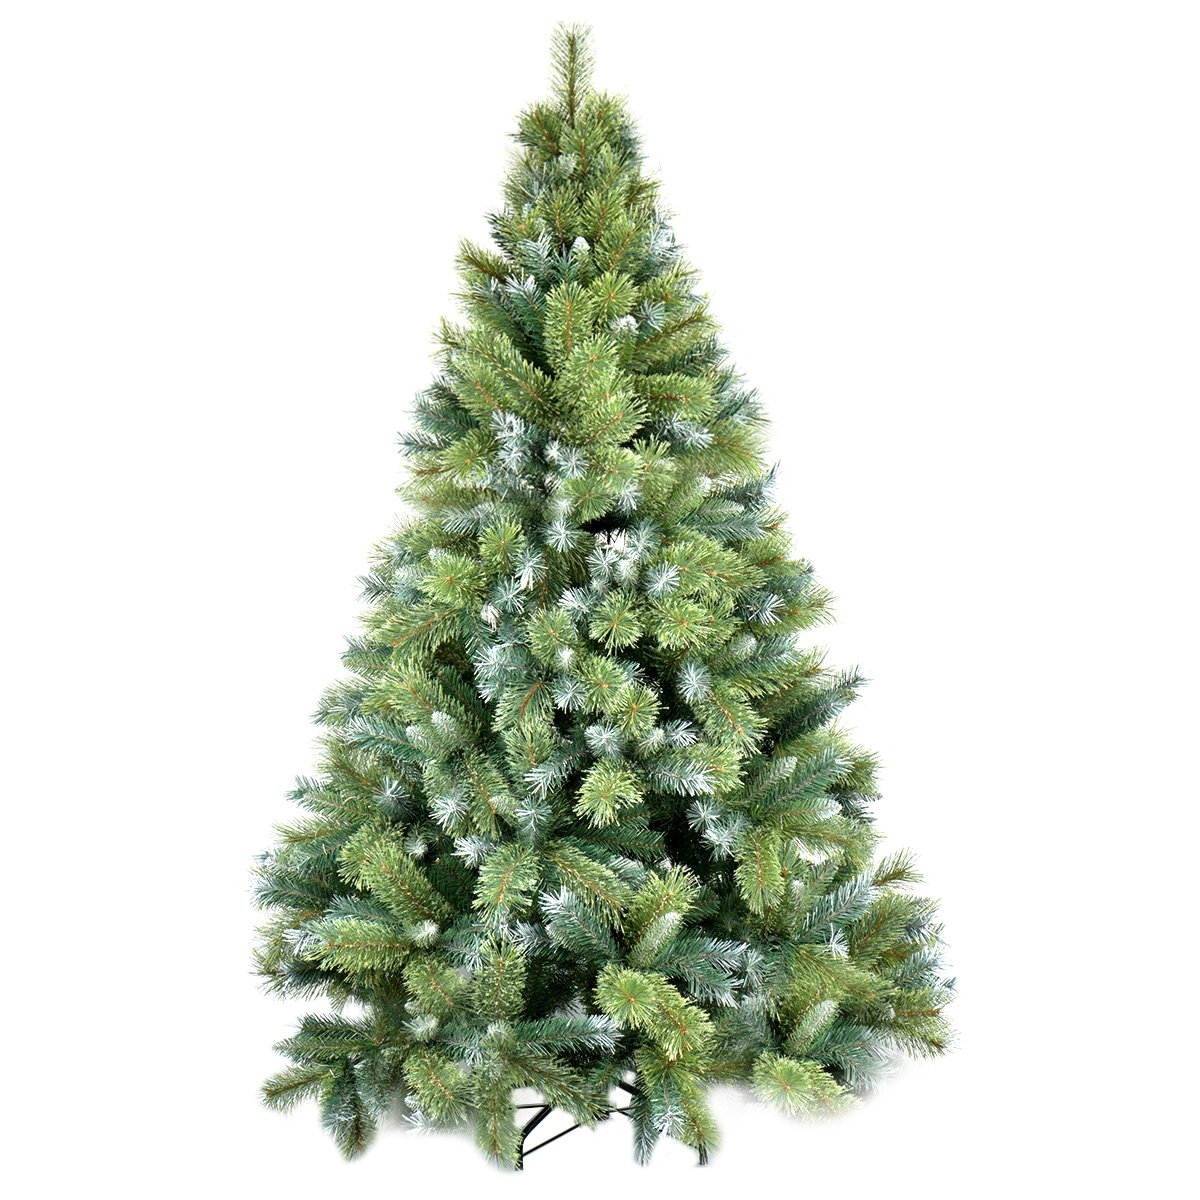 Christmas Trees | Amazon.com